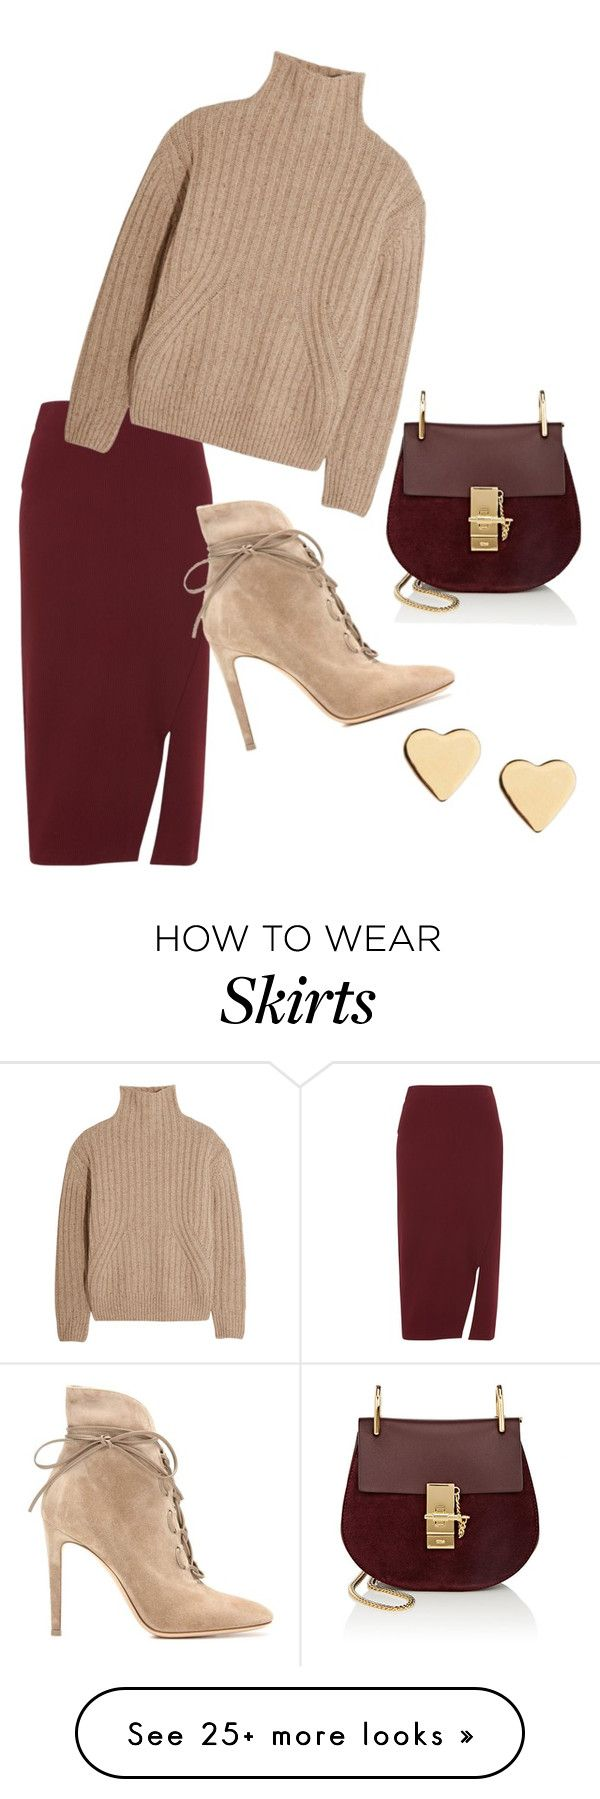 """""""Bordeaux skirt"""" by lenaek on Polyvore featuring Whistles, Totême, Gianvito Rossi, Chloé and Lipsy"""